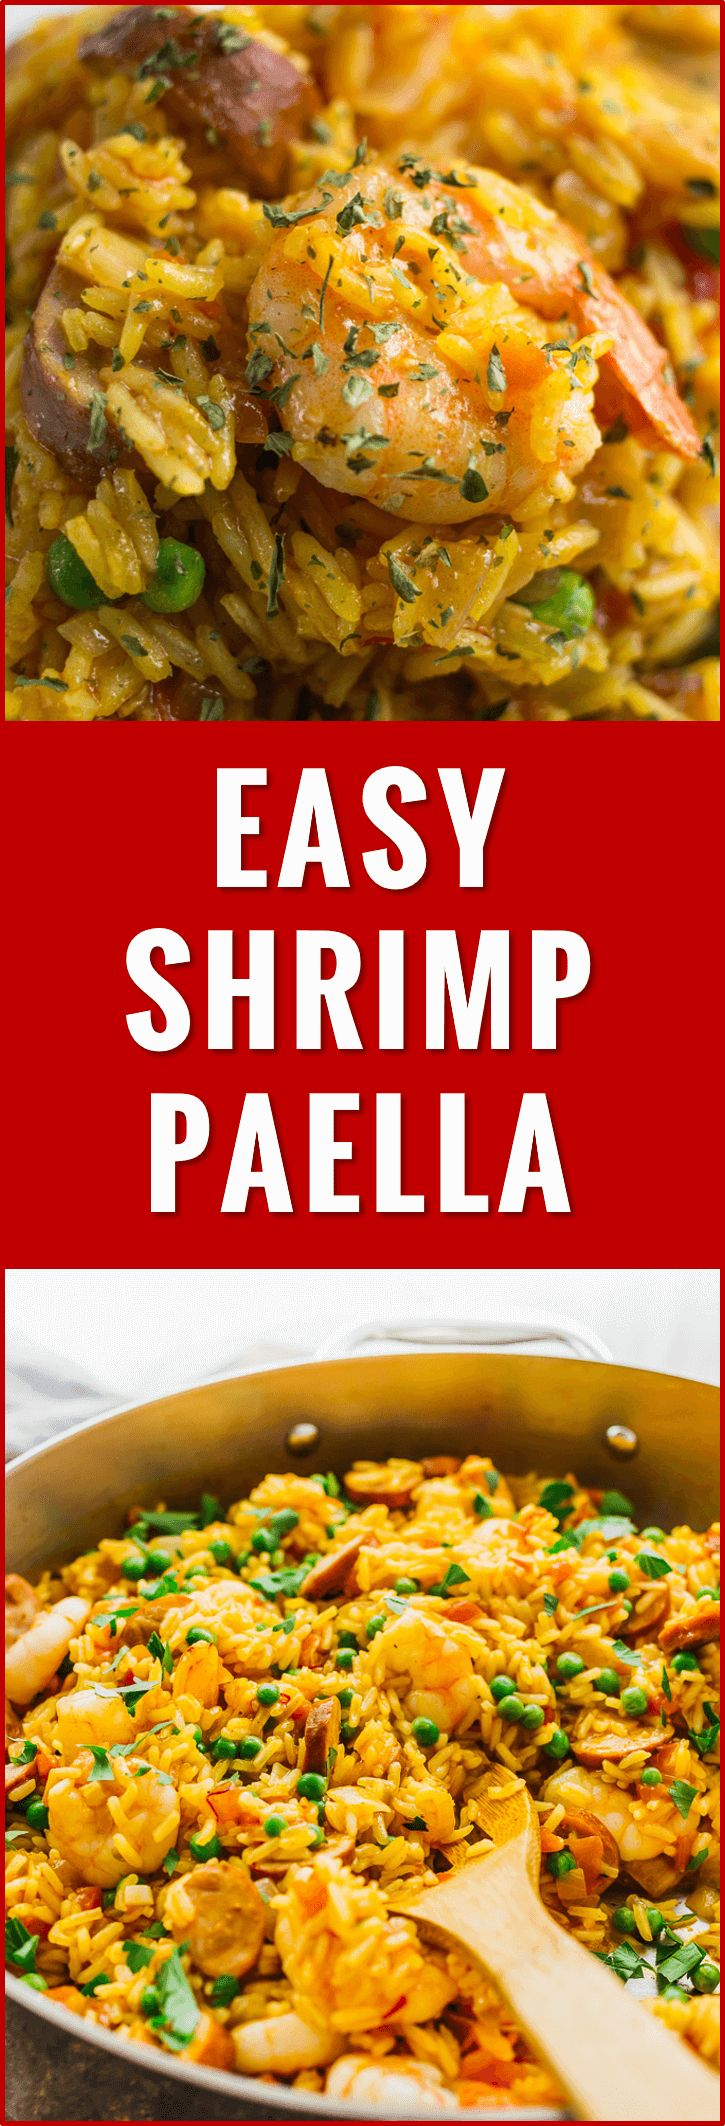 Easy shrimp paella with smoked chicken sausage - This is my everyday paella: an easy one pot meal with shrimp, smoked sausage, tomatoes, onions, peas, garlic, and saffron. recipe, seafood, easy, meat, chicken, authentic, spanish, party, valenciana, shrimp, receta, traditional, veggie, vegetable, chorizo, rice, pan, spain, sides, barcelona, espanola, dinner, best, recette, rapide, original, mexicana, restaurant, de pollo